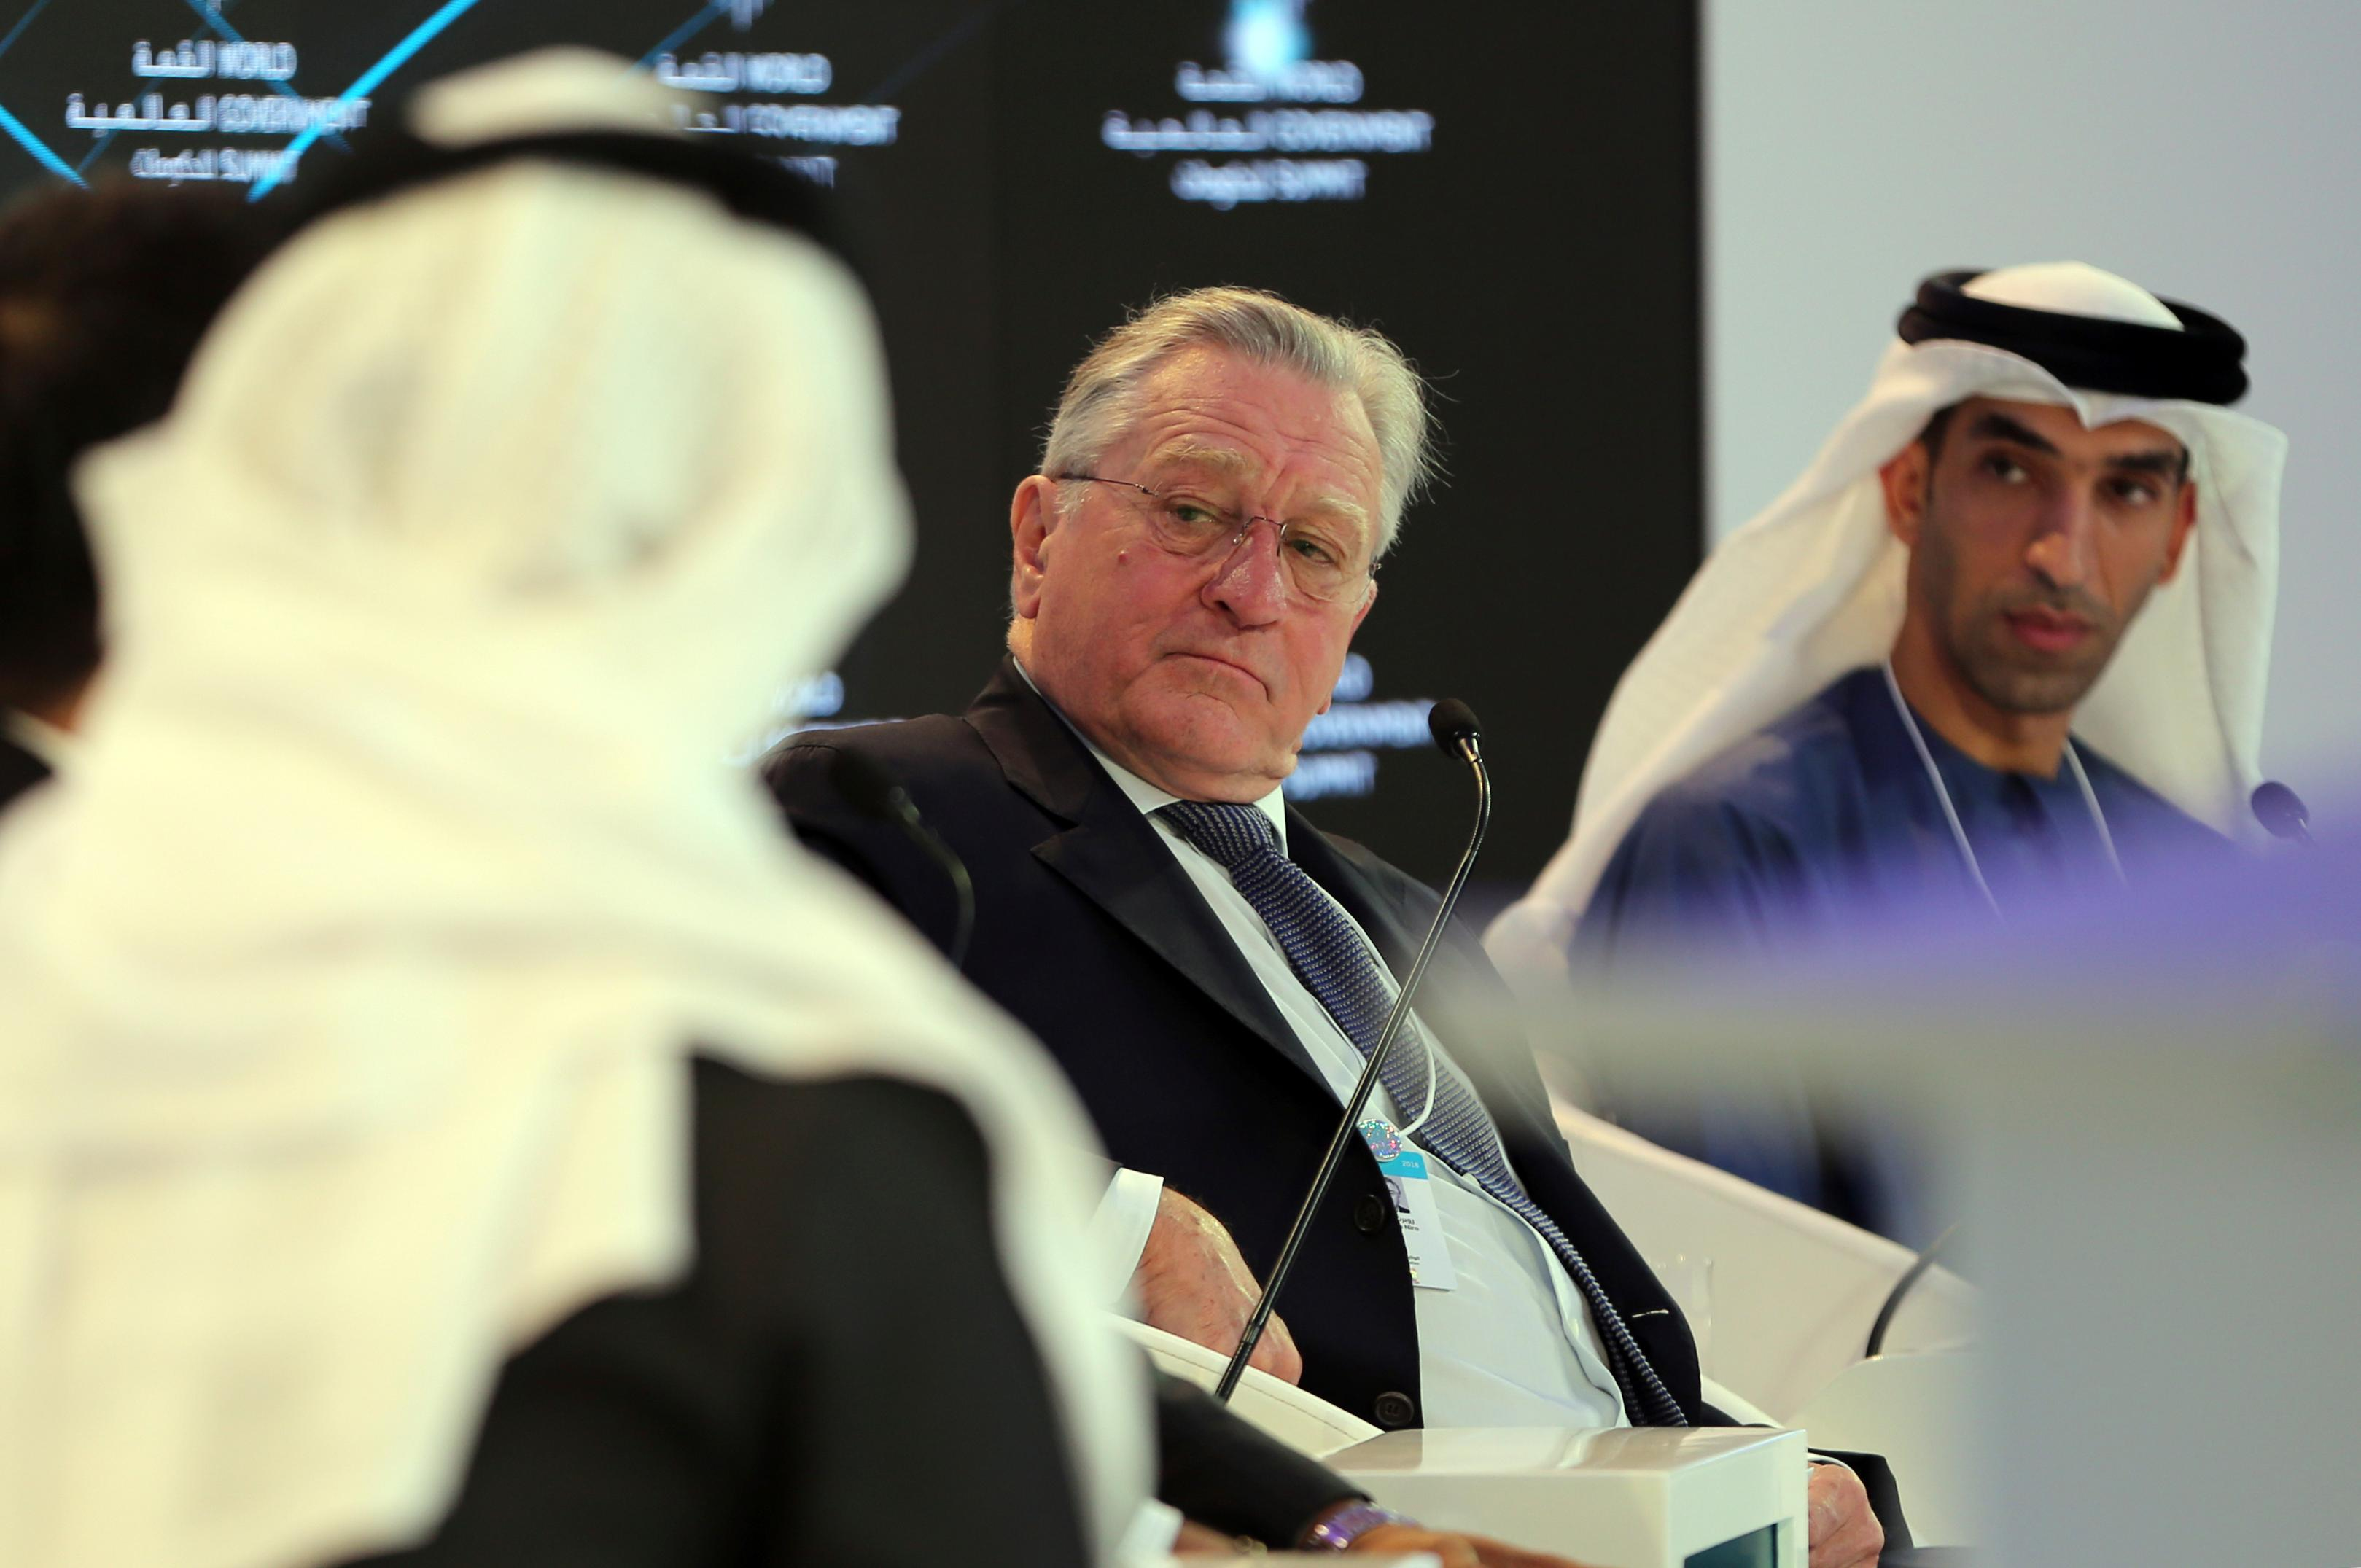 "American Hollywood star Robert De Niro listens to one of the panel speakers next to Dr. Thani Ahmed Al Zeyoudi, right, the UAE Minister of Climate Change and Environment during the World Government Summit in Dubai, United Arab Emirates, Sunday, Feb. 11, 2018. De Niro took aim at the Trump administration's stance on climate change, telling a packed audience that he was visiting from a ""backward"" country suffering from ""temporary insanity."" (AP Photo/Kamran Jebreili)"